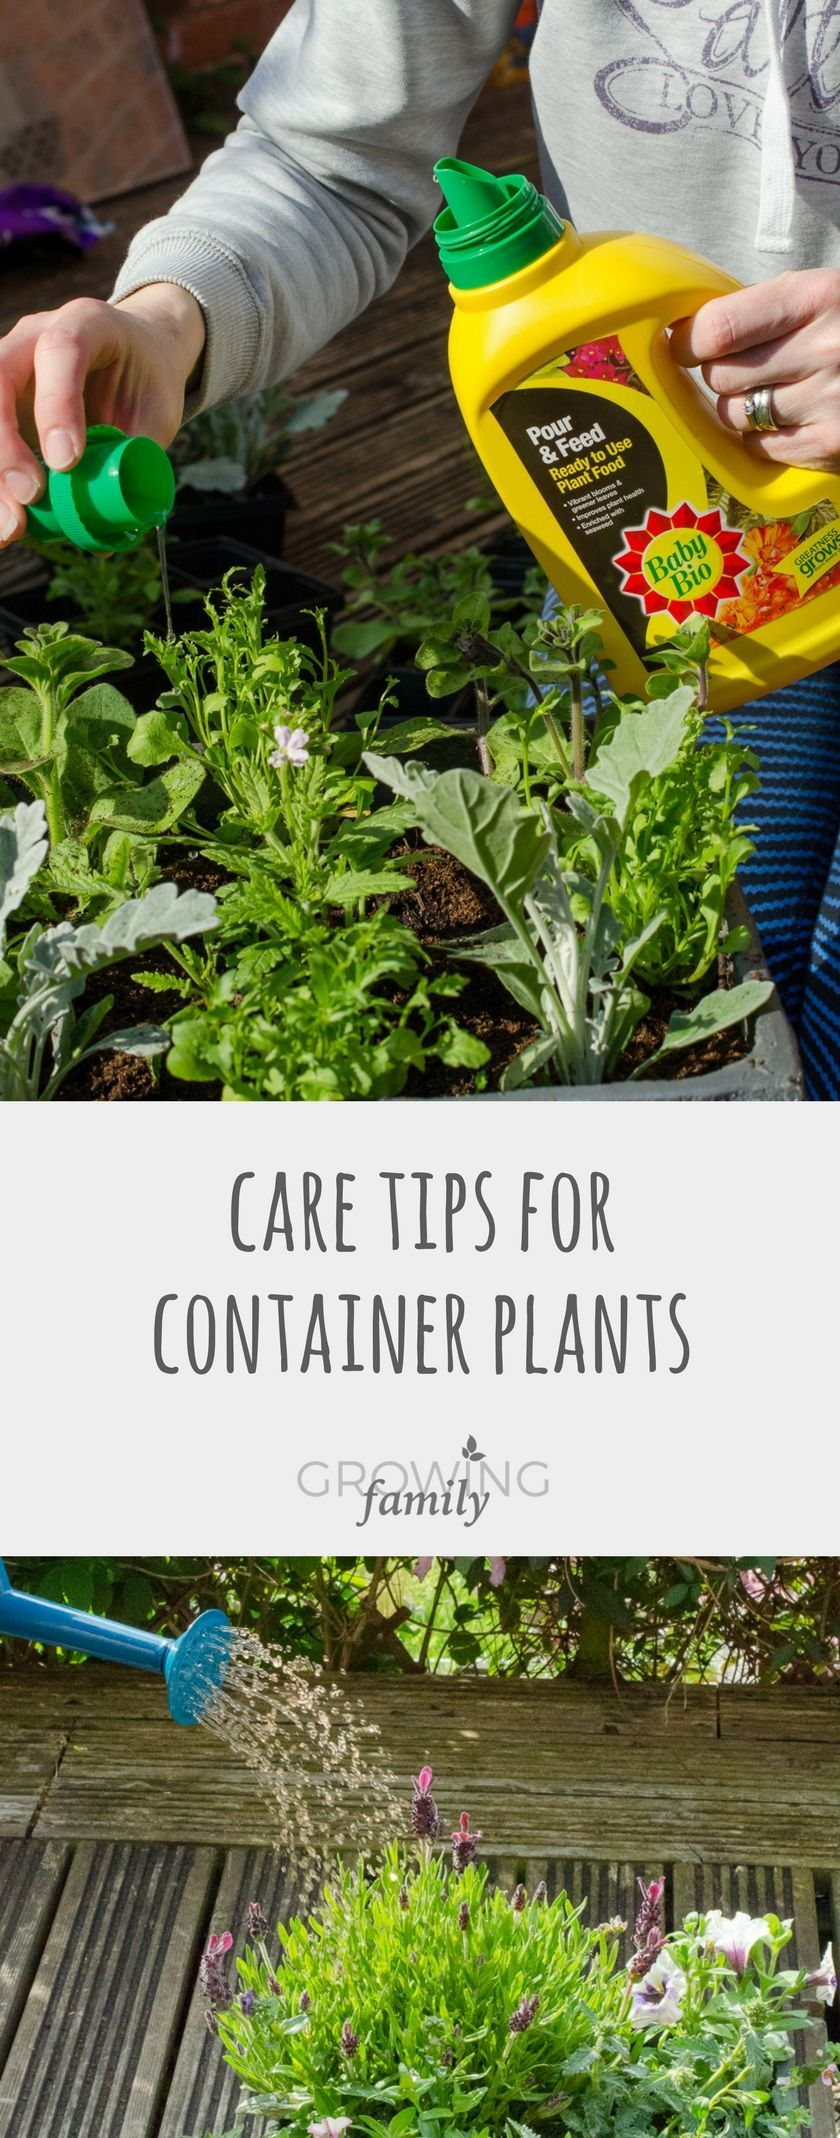 care tips for containers Not sure how to take care of your container plants? These plant care tips explain how to keep them happy, with the help of Baby Bio Pour & Feed plant food.Not sure how to take care of your container plants? These plant care tips explain how to keep them happy, with the help of Baby Bio Pour & Feed plant food.